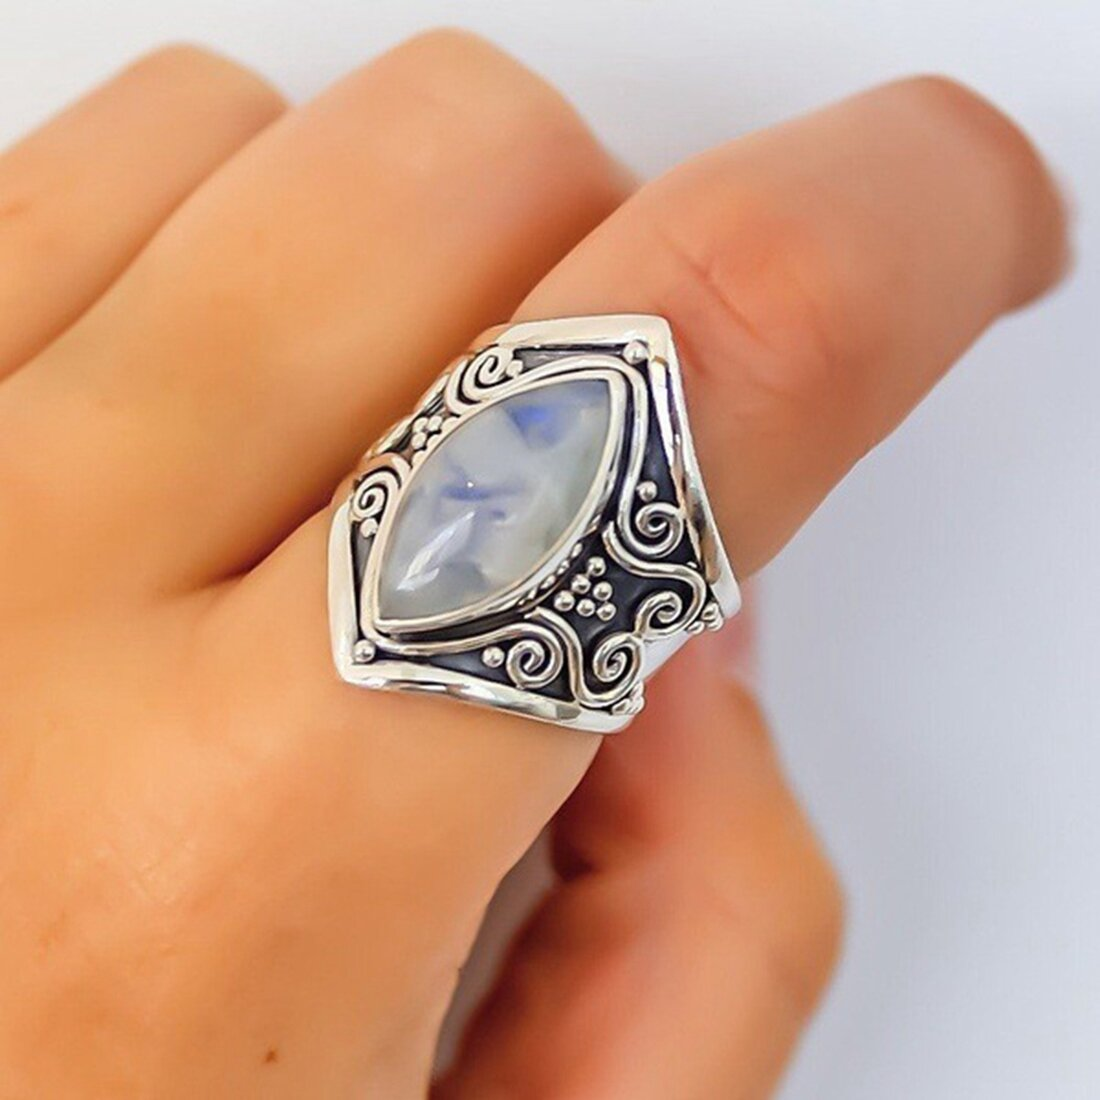 Ethnic Moonstone Finger Ring Vintage Finger Rings Accessories Gift Jewelry for Women